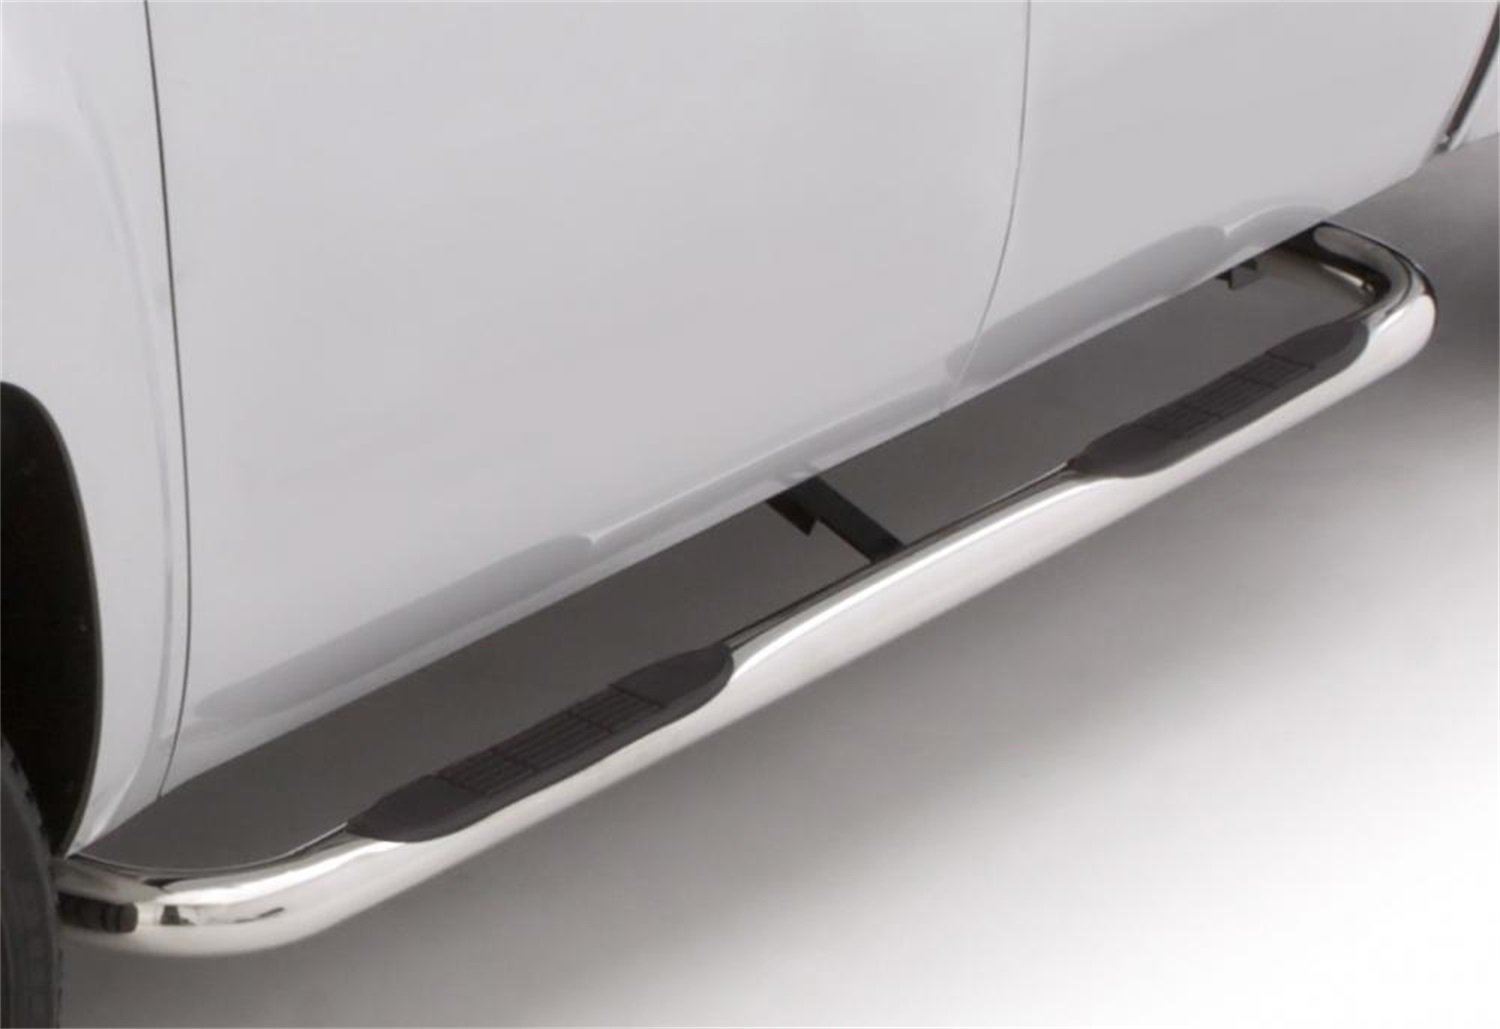 Lund 22610600 Polished Stainless Steel 3 Round Bent Nerf Bars for 2015-2018 Chevrolet Colorado//GMC Canyon Crew Cab